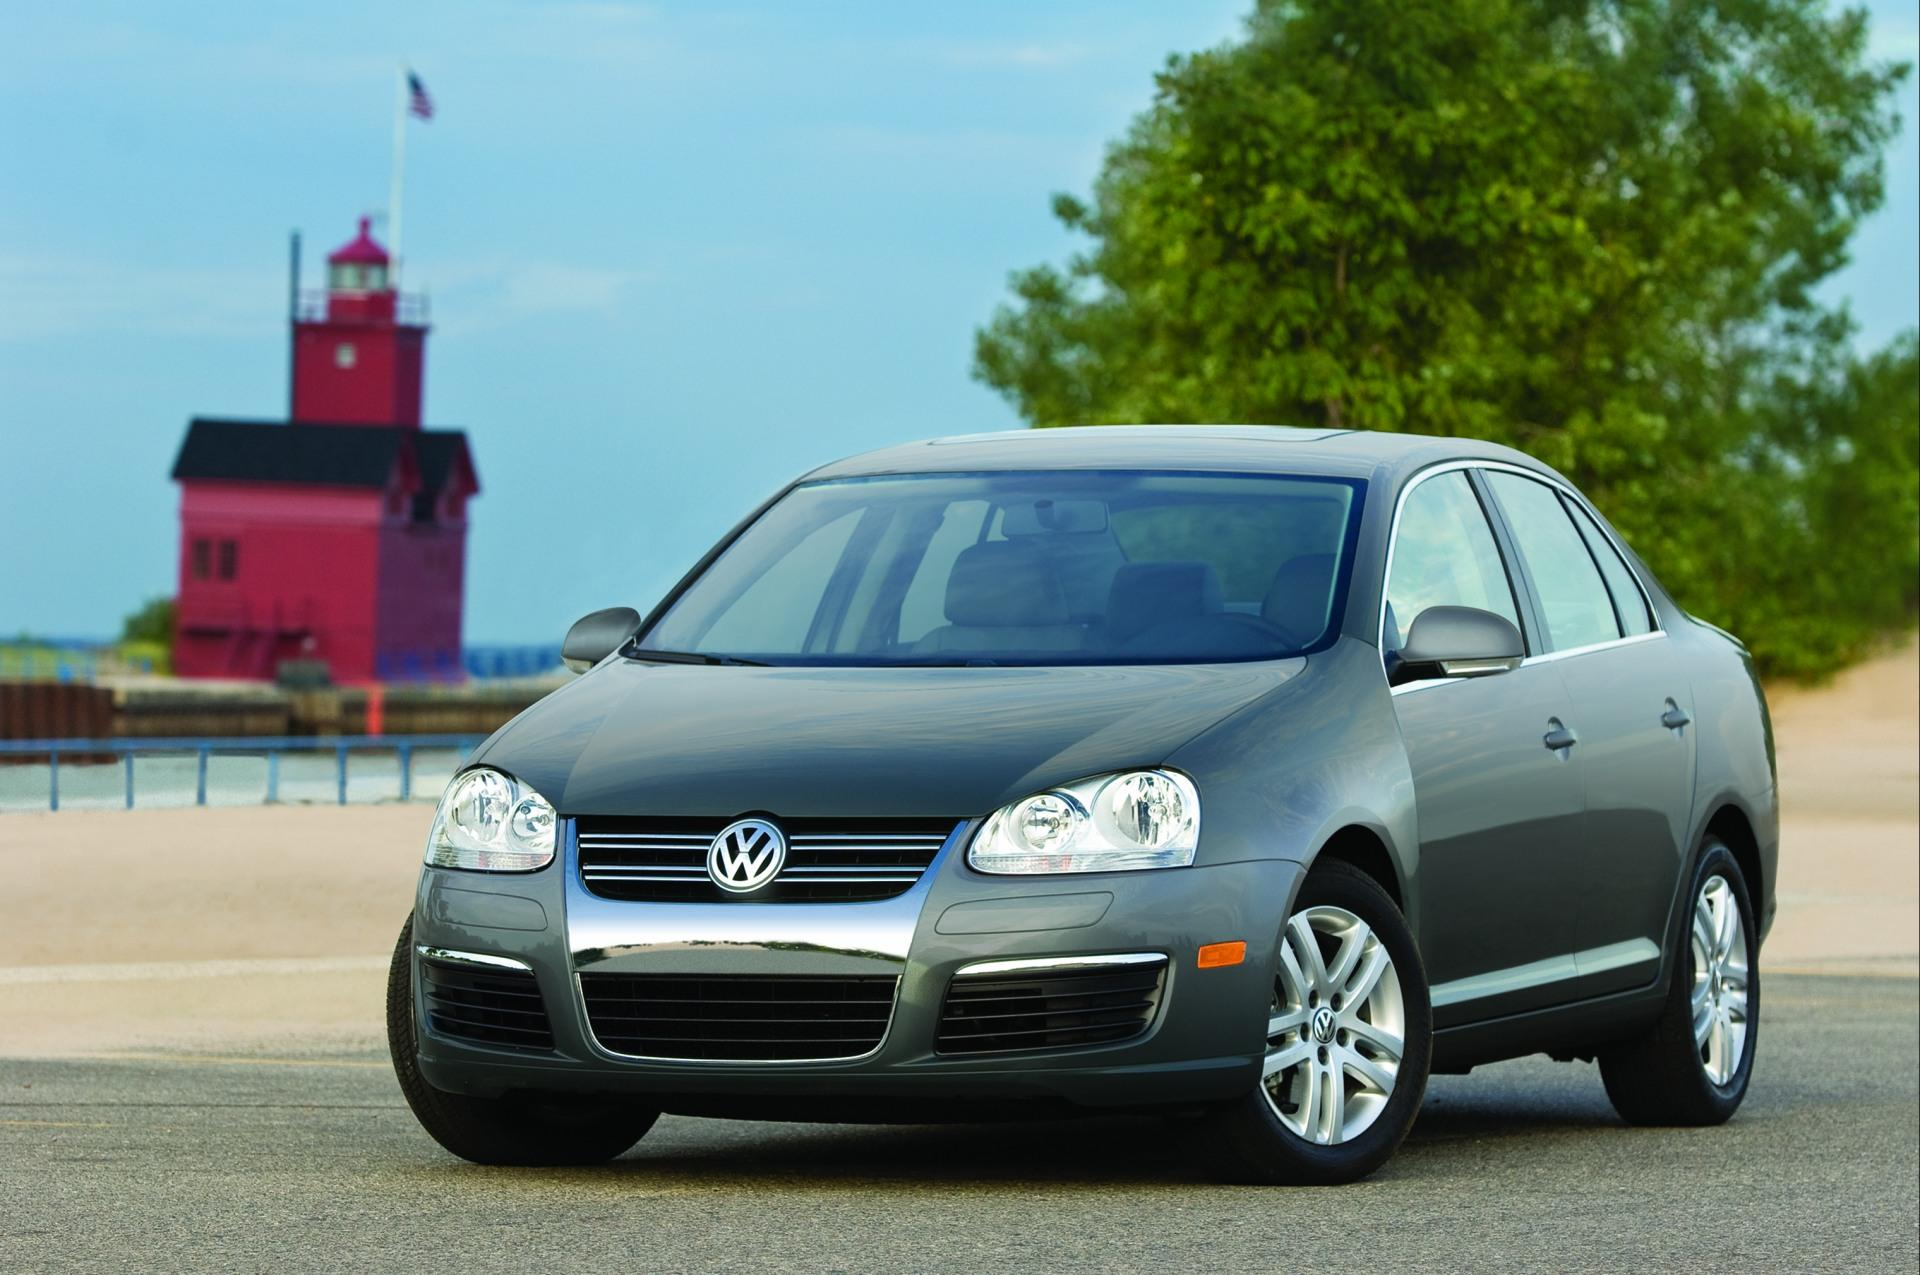 can still recalls getta china beetle youd news million rear you betta while over suspension says and volkswagen us models in jetta